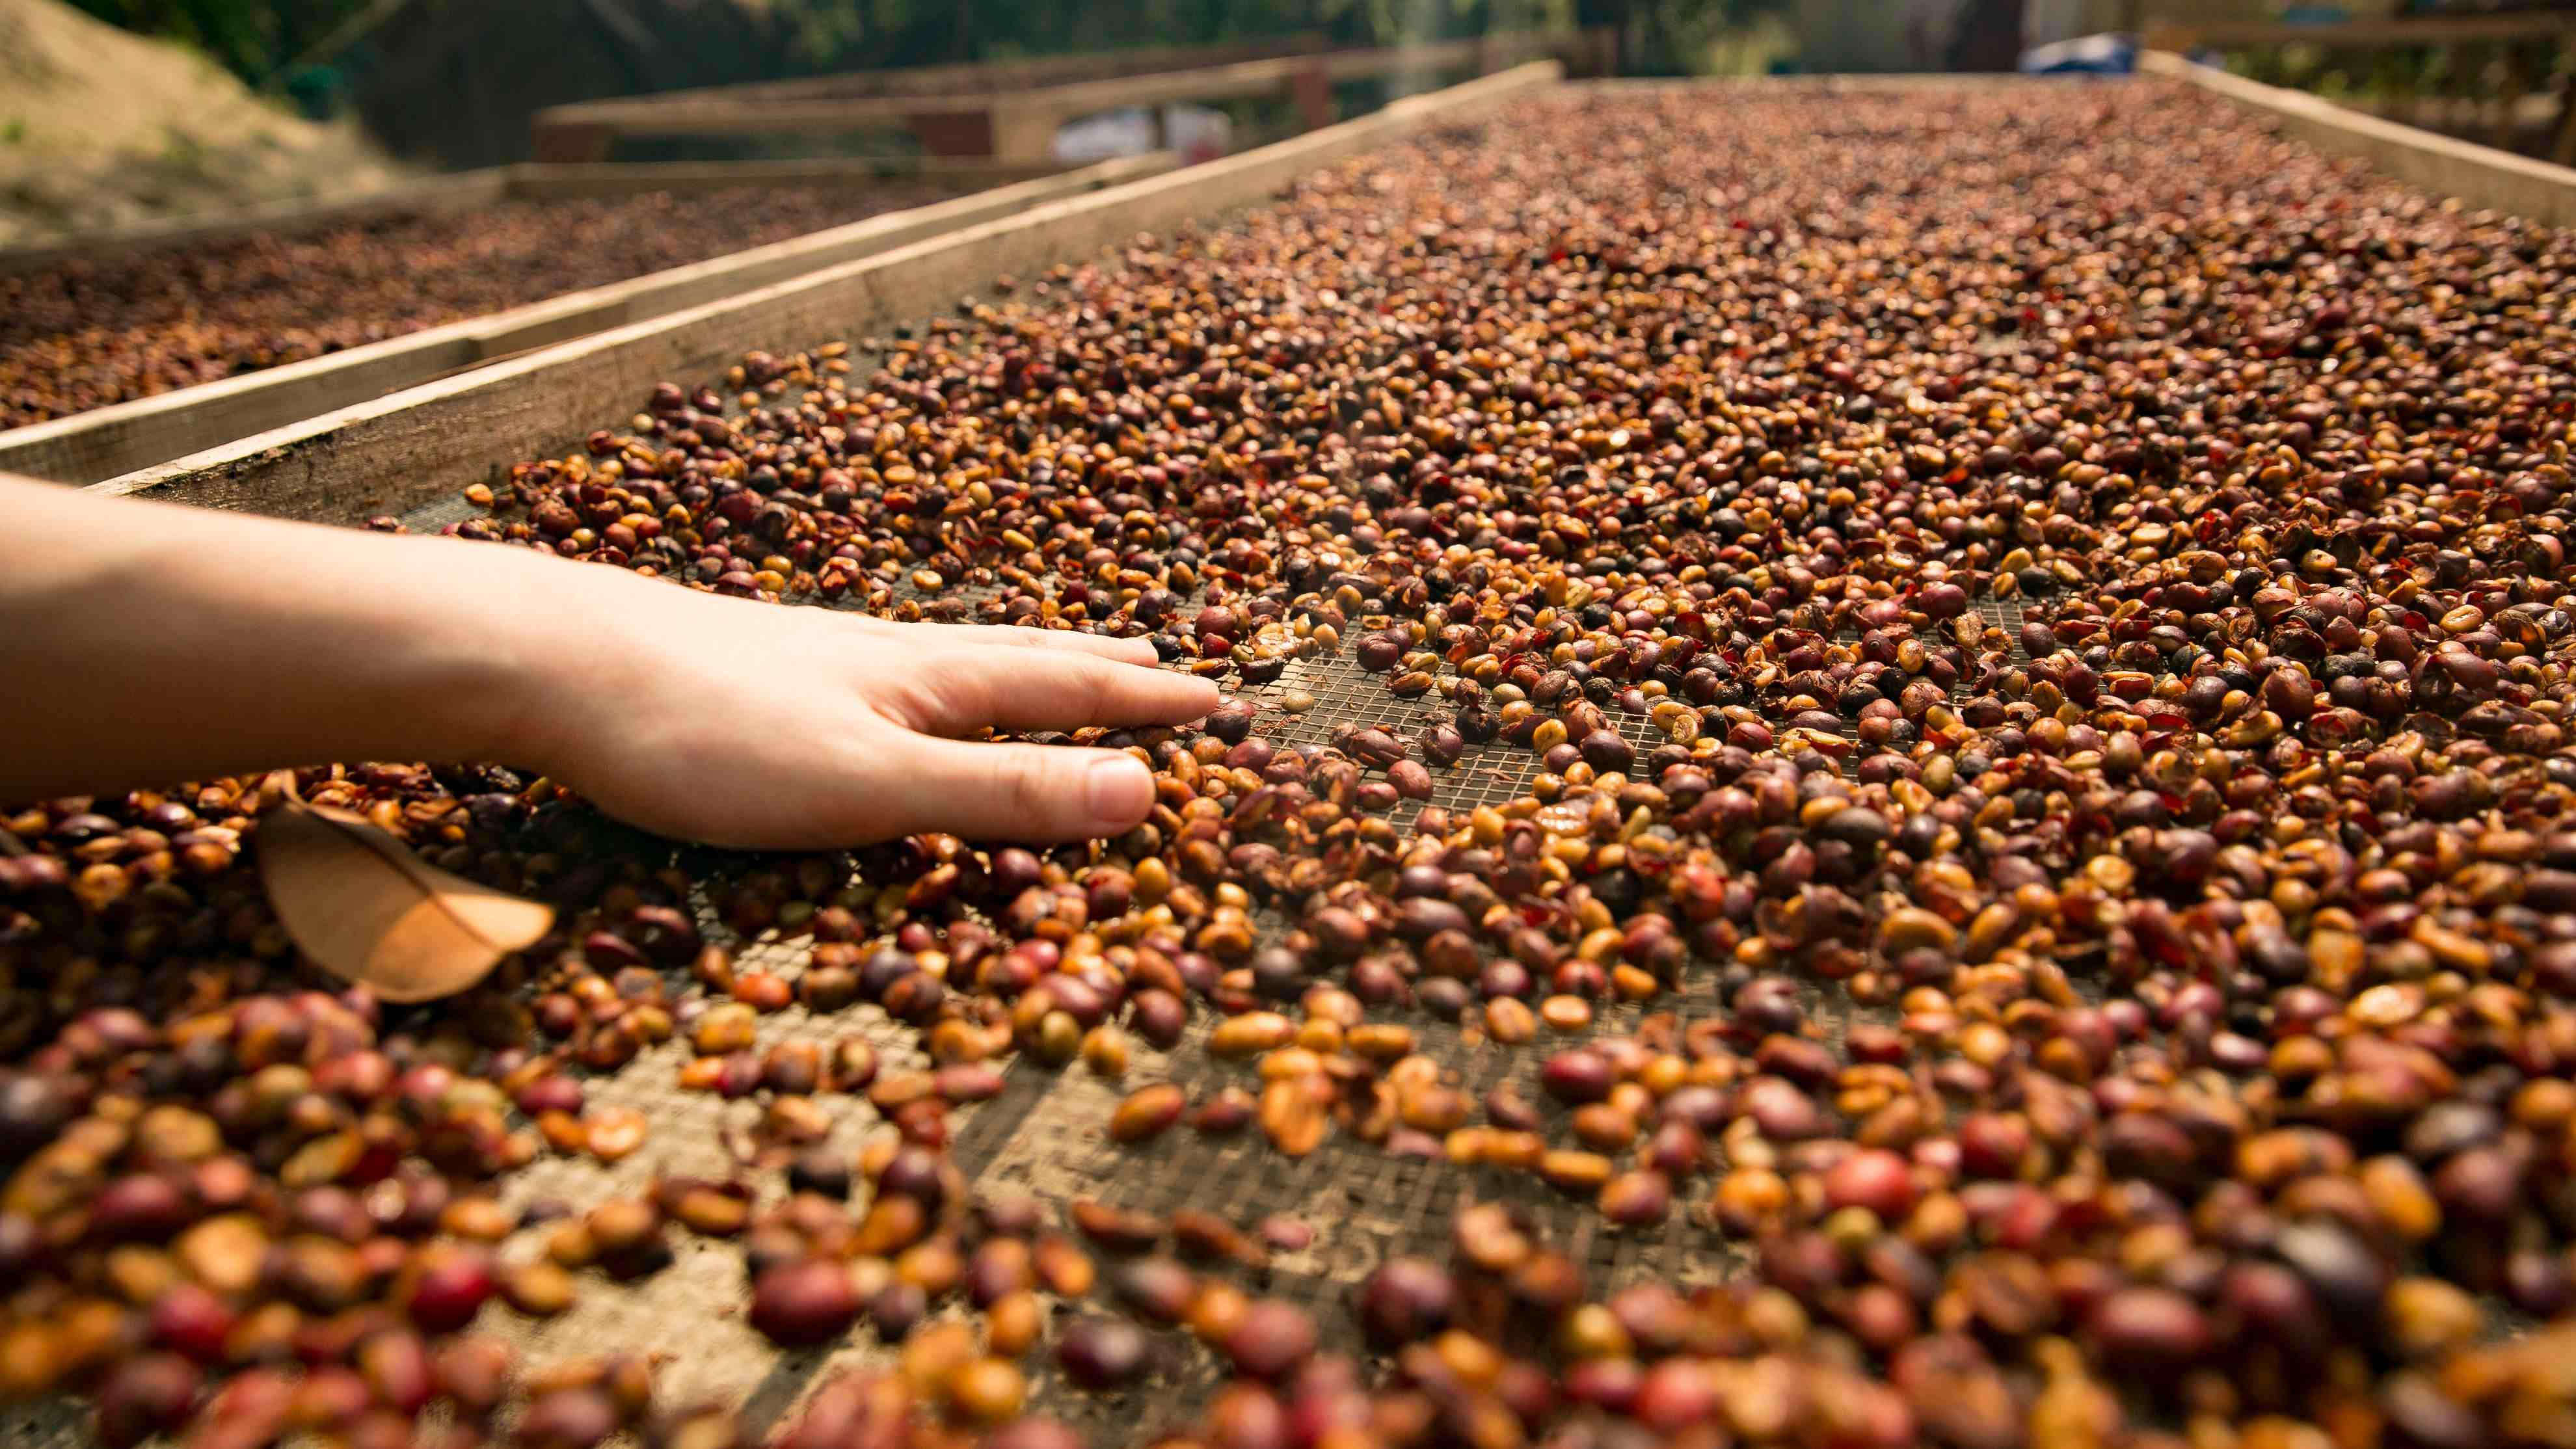 China's coffee consumption upgrading speeds up industrial layout